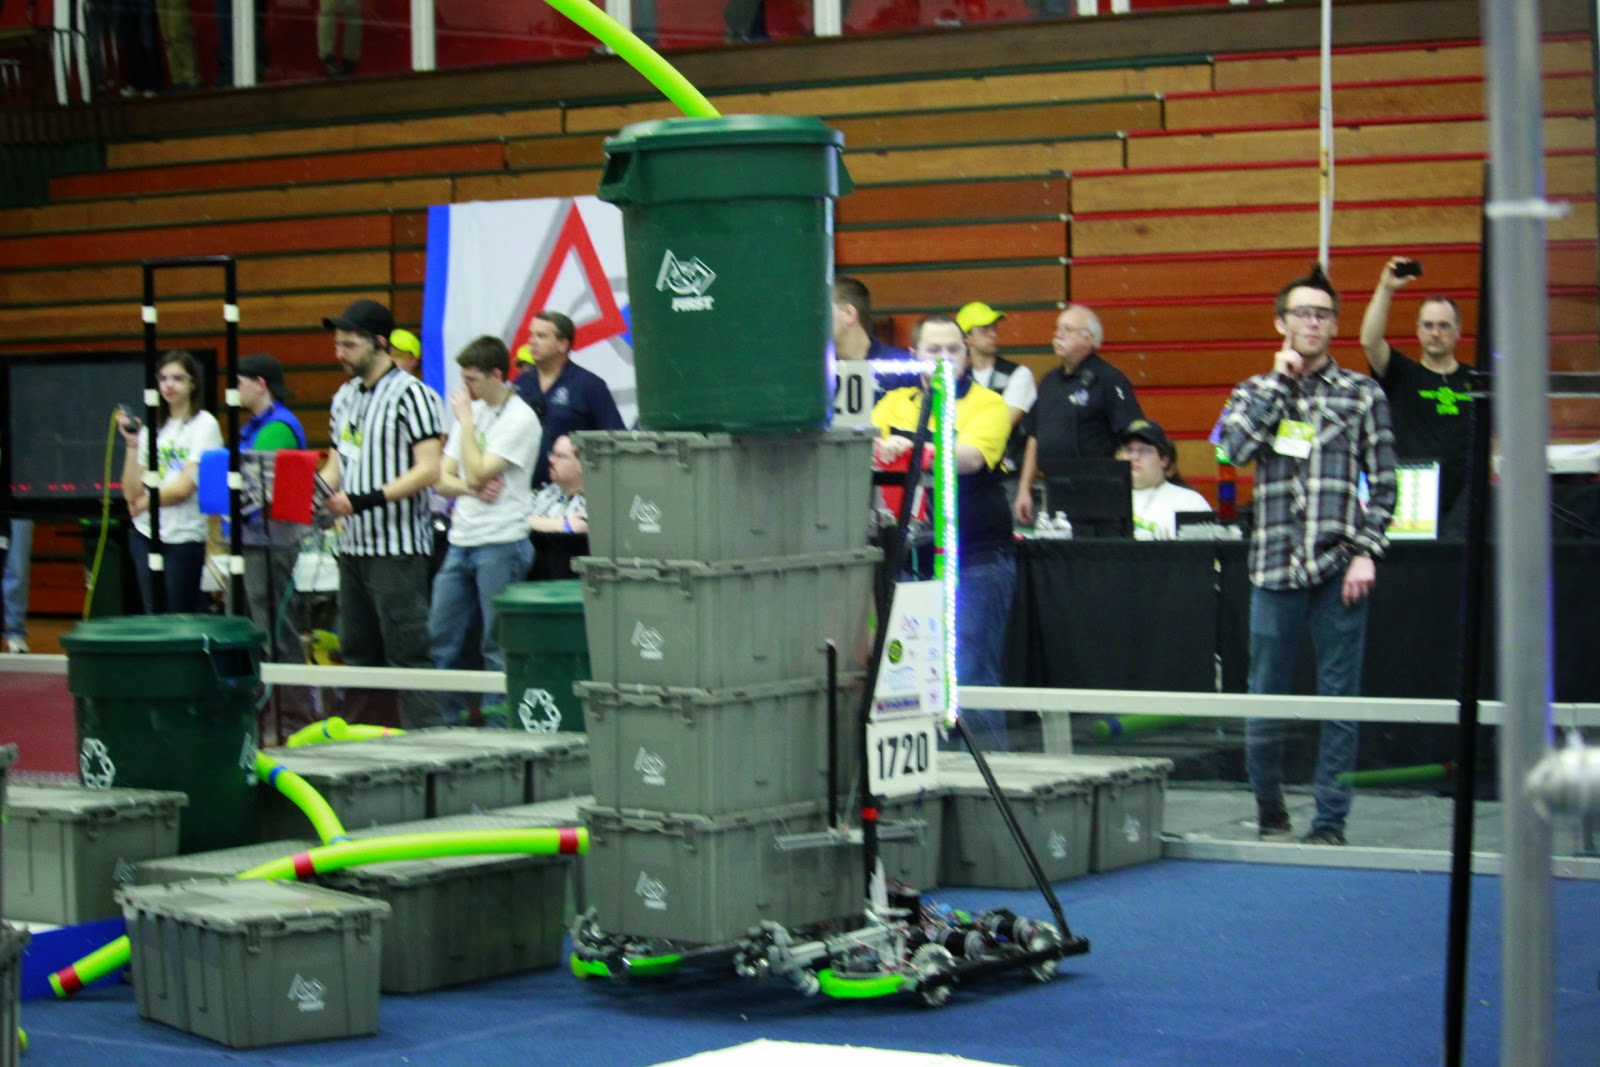 FIRST Team 1720 Recycle RUSH Kokomo competition